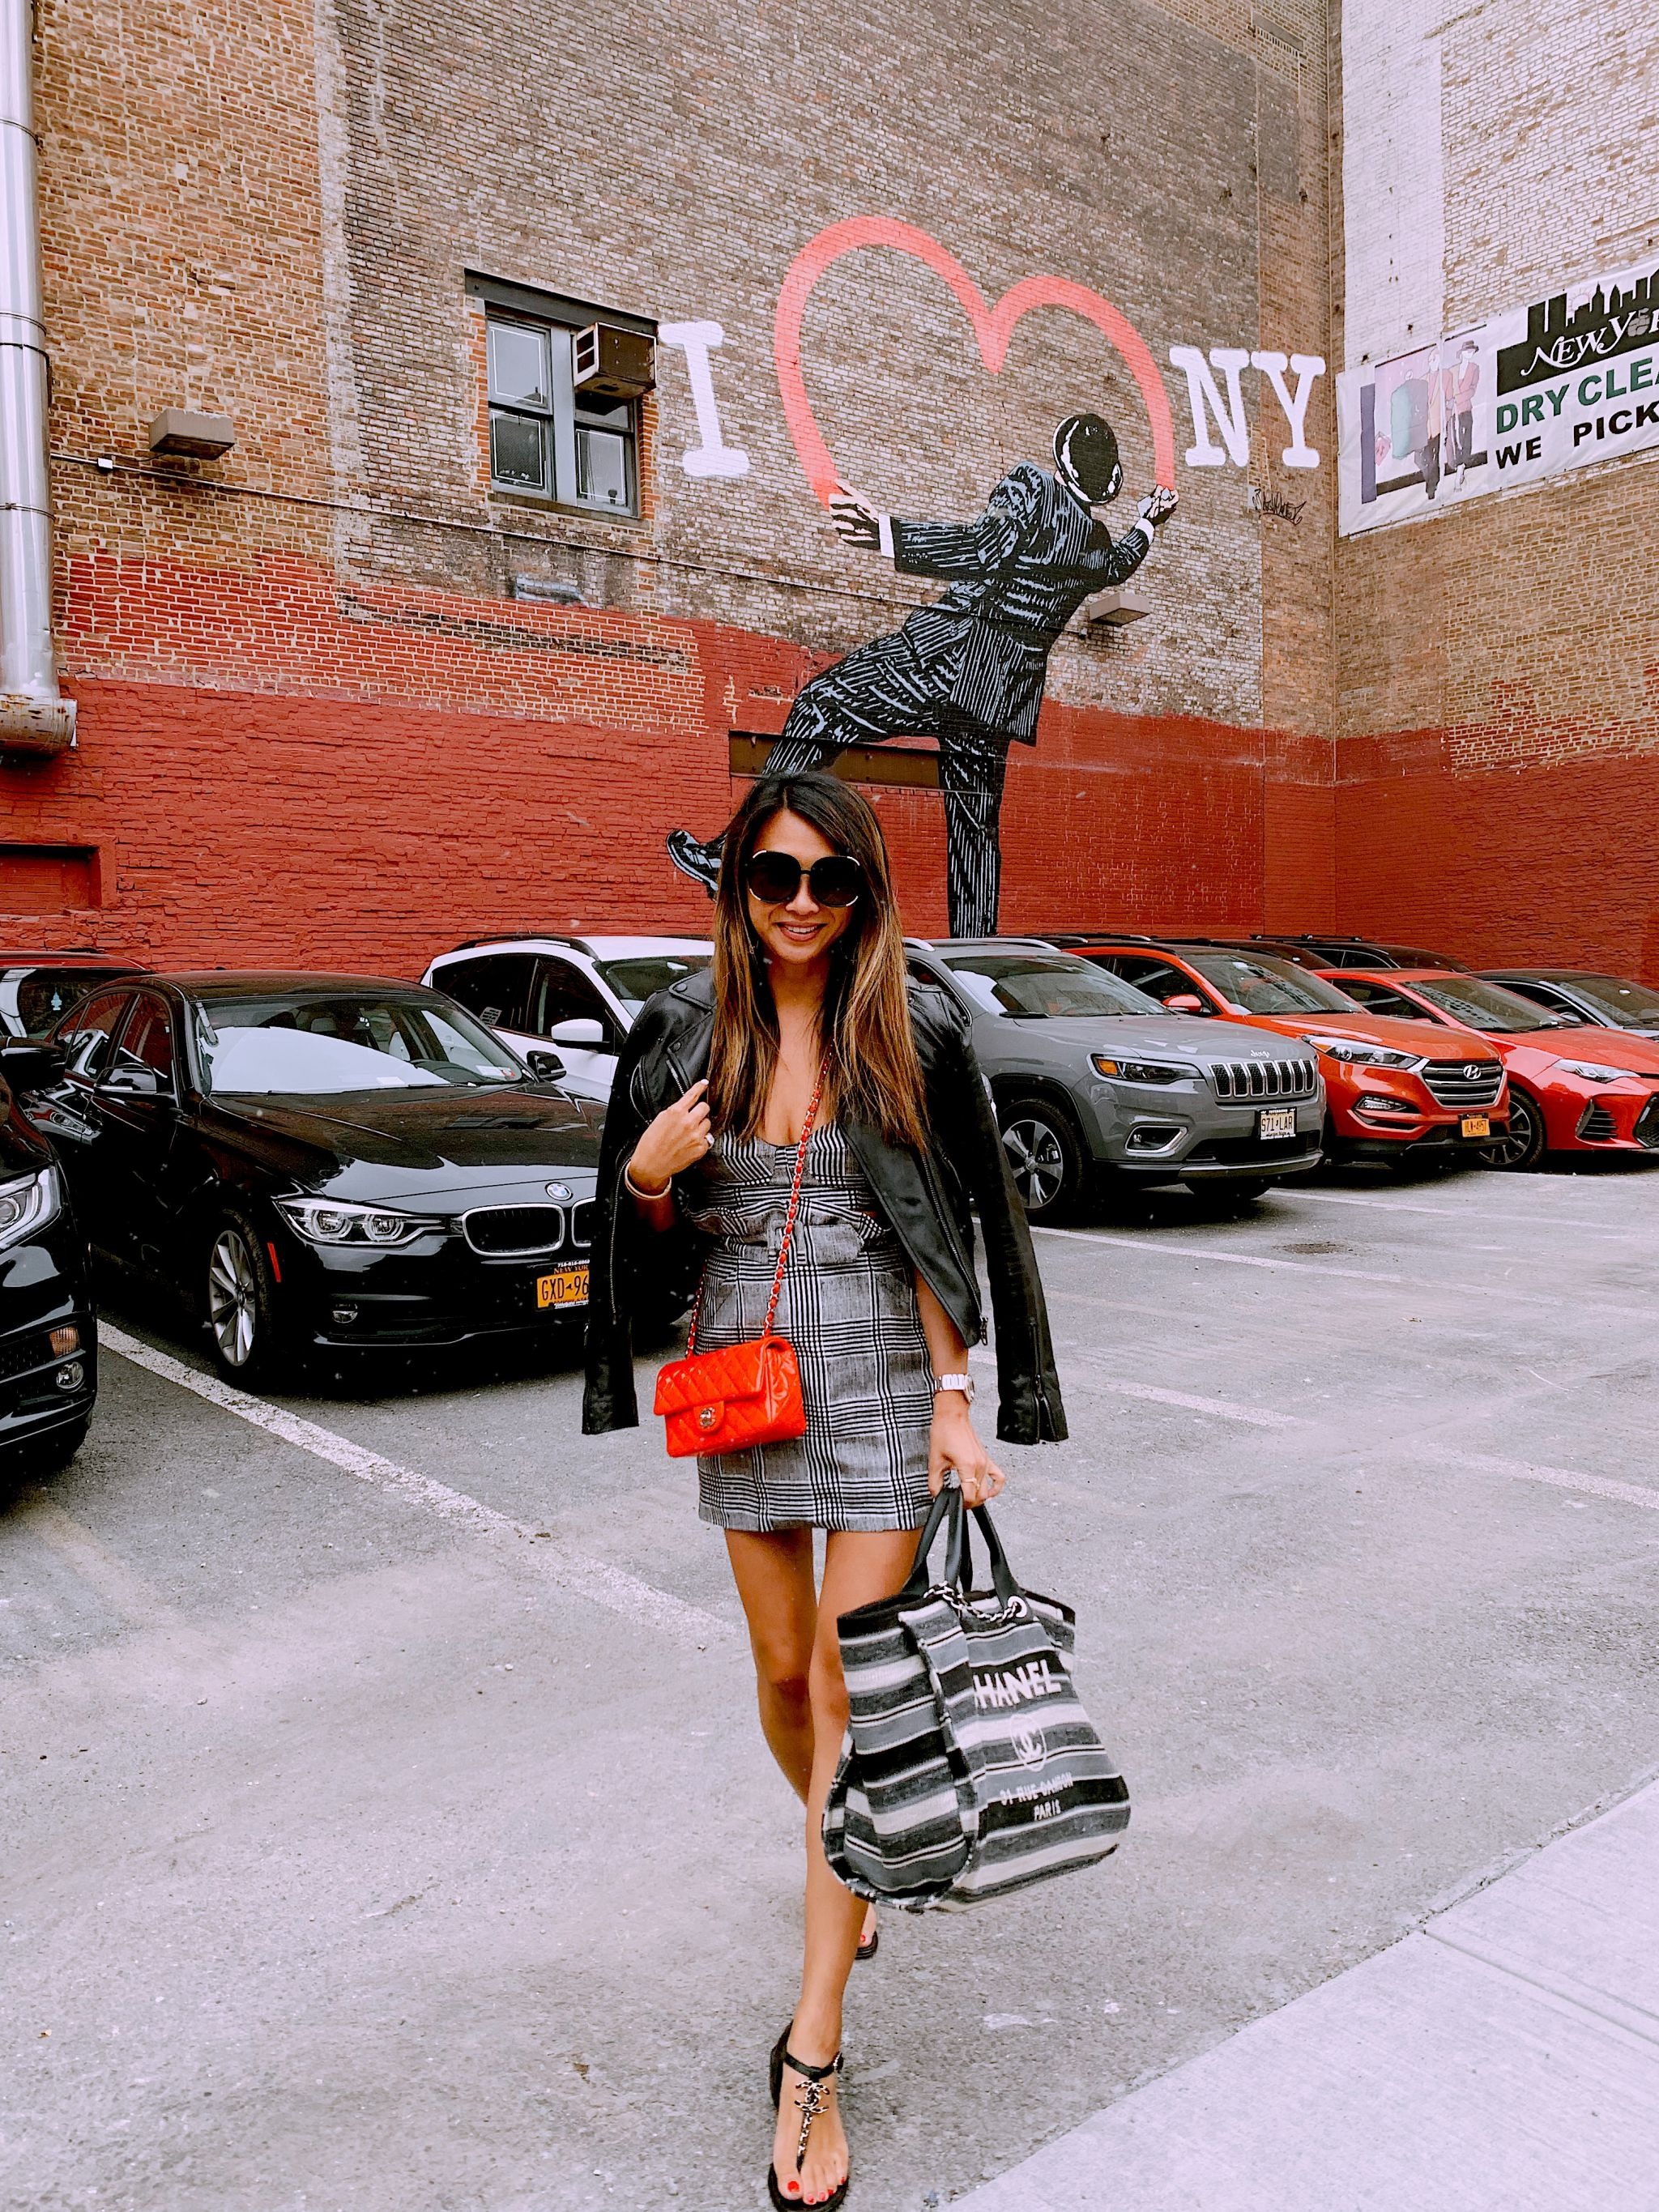 Jennifer Worman, Red Soles and Red Wine, chicago blogger, travel blogger, fashion blogger, outfit ideas, June Recap, monthly recap, June 2019, fashion and lifestyle blog, travel blog, new york travel guide, New York trip, New York girls trip